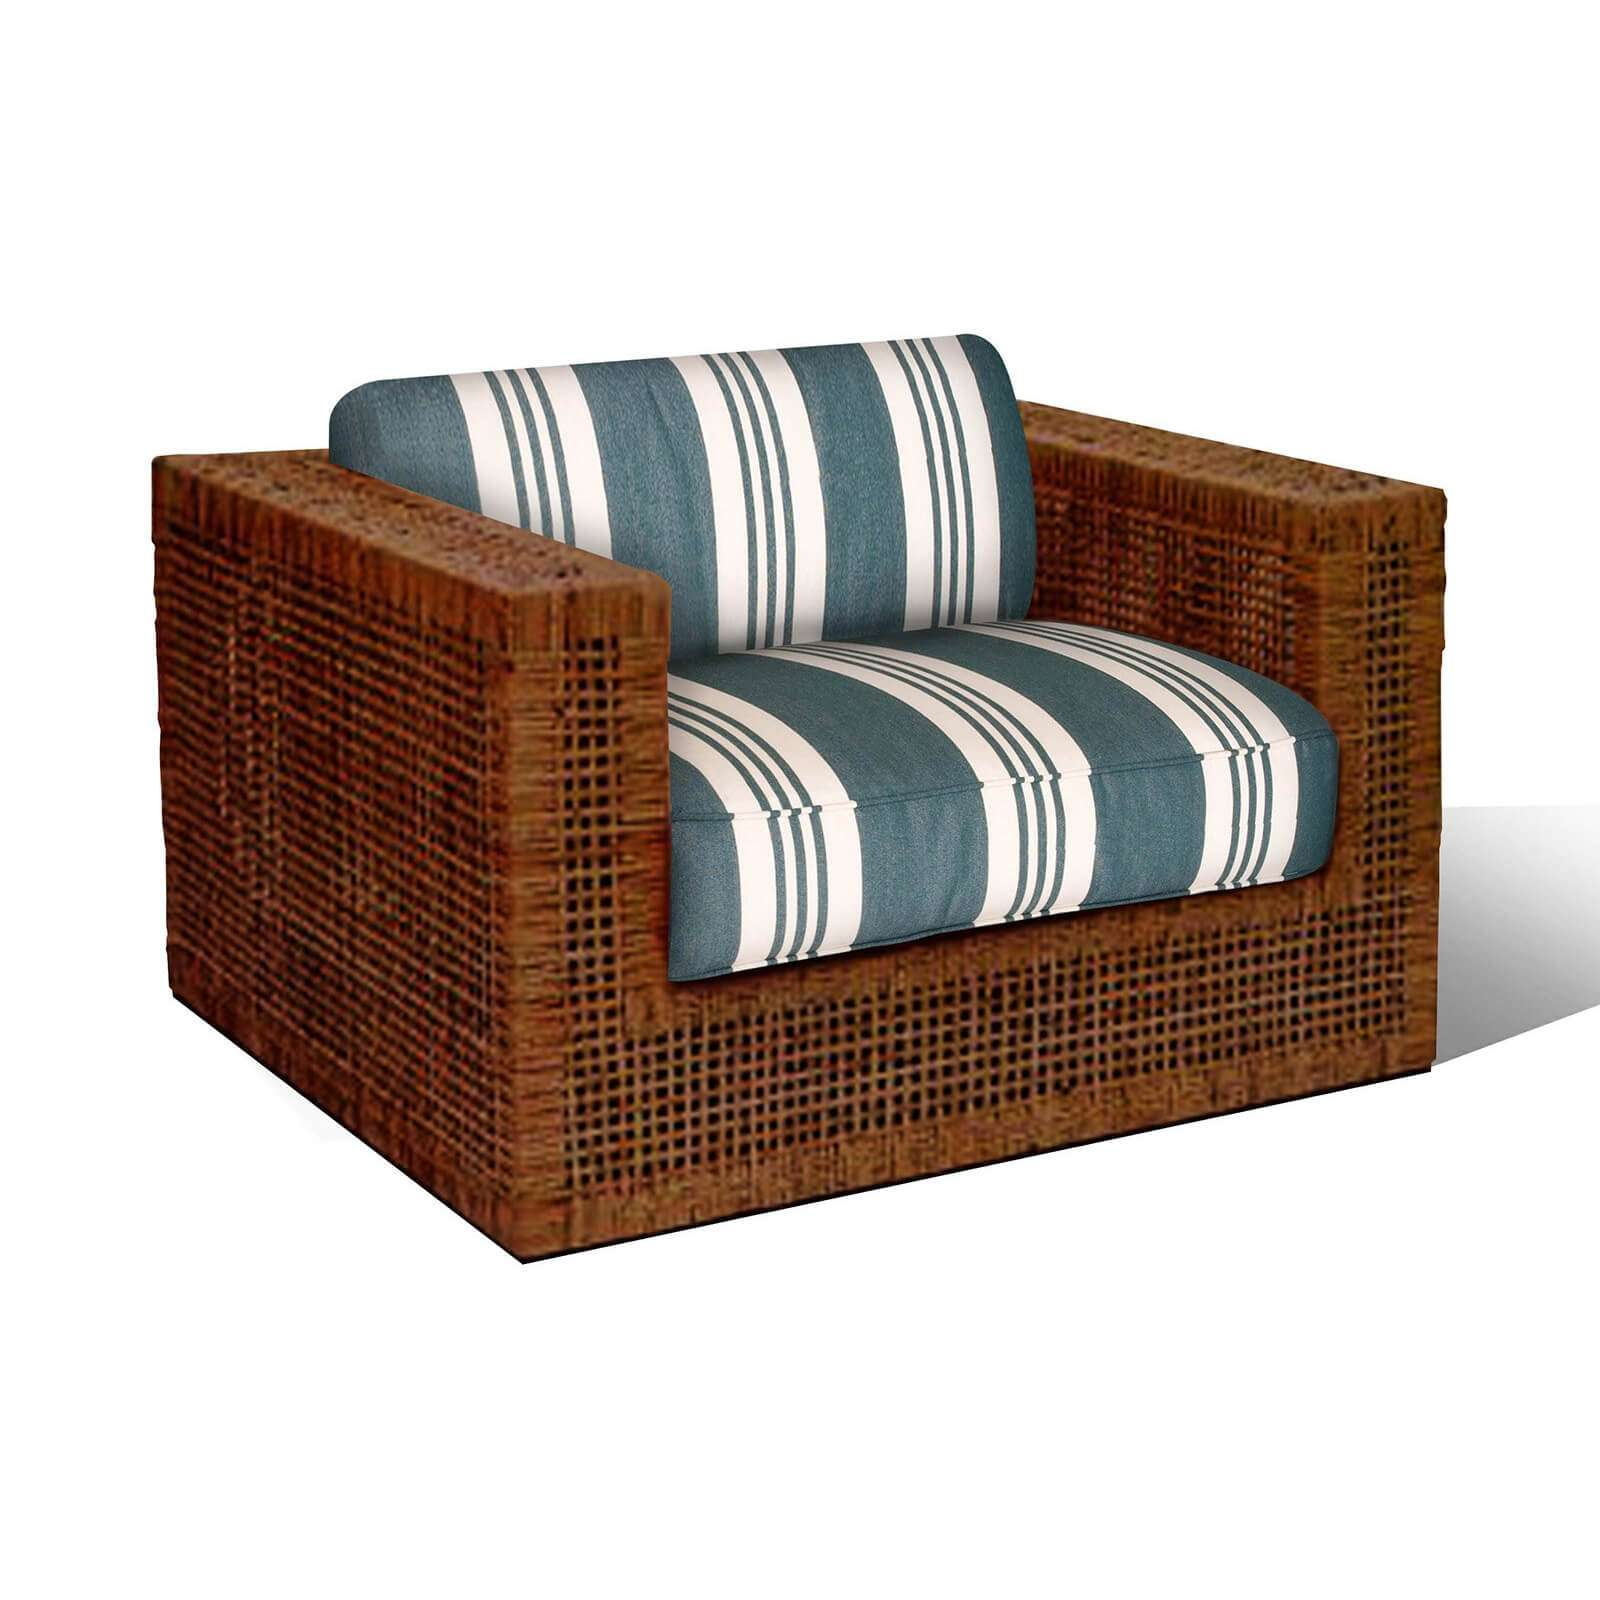 HARBOR ISLAND CLUB CHAIR